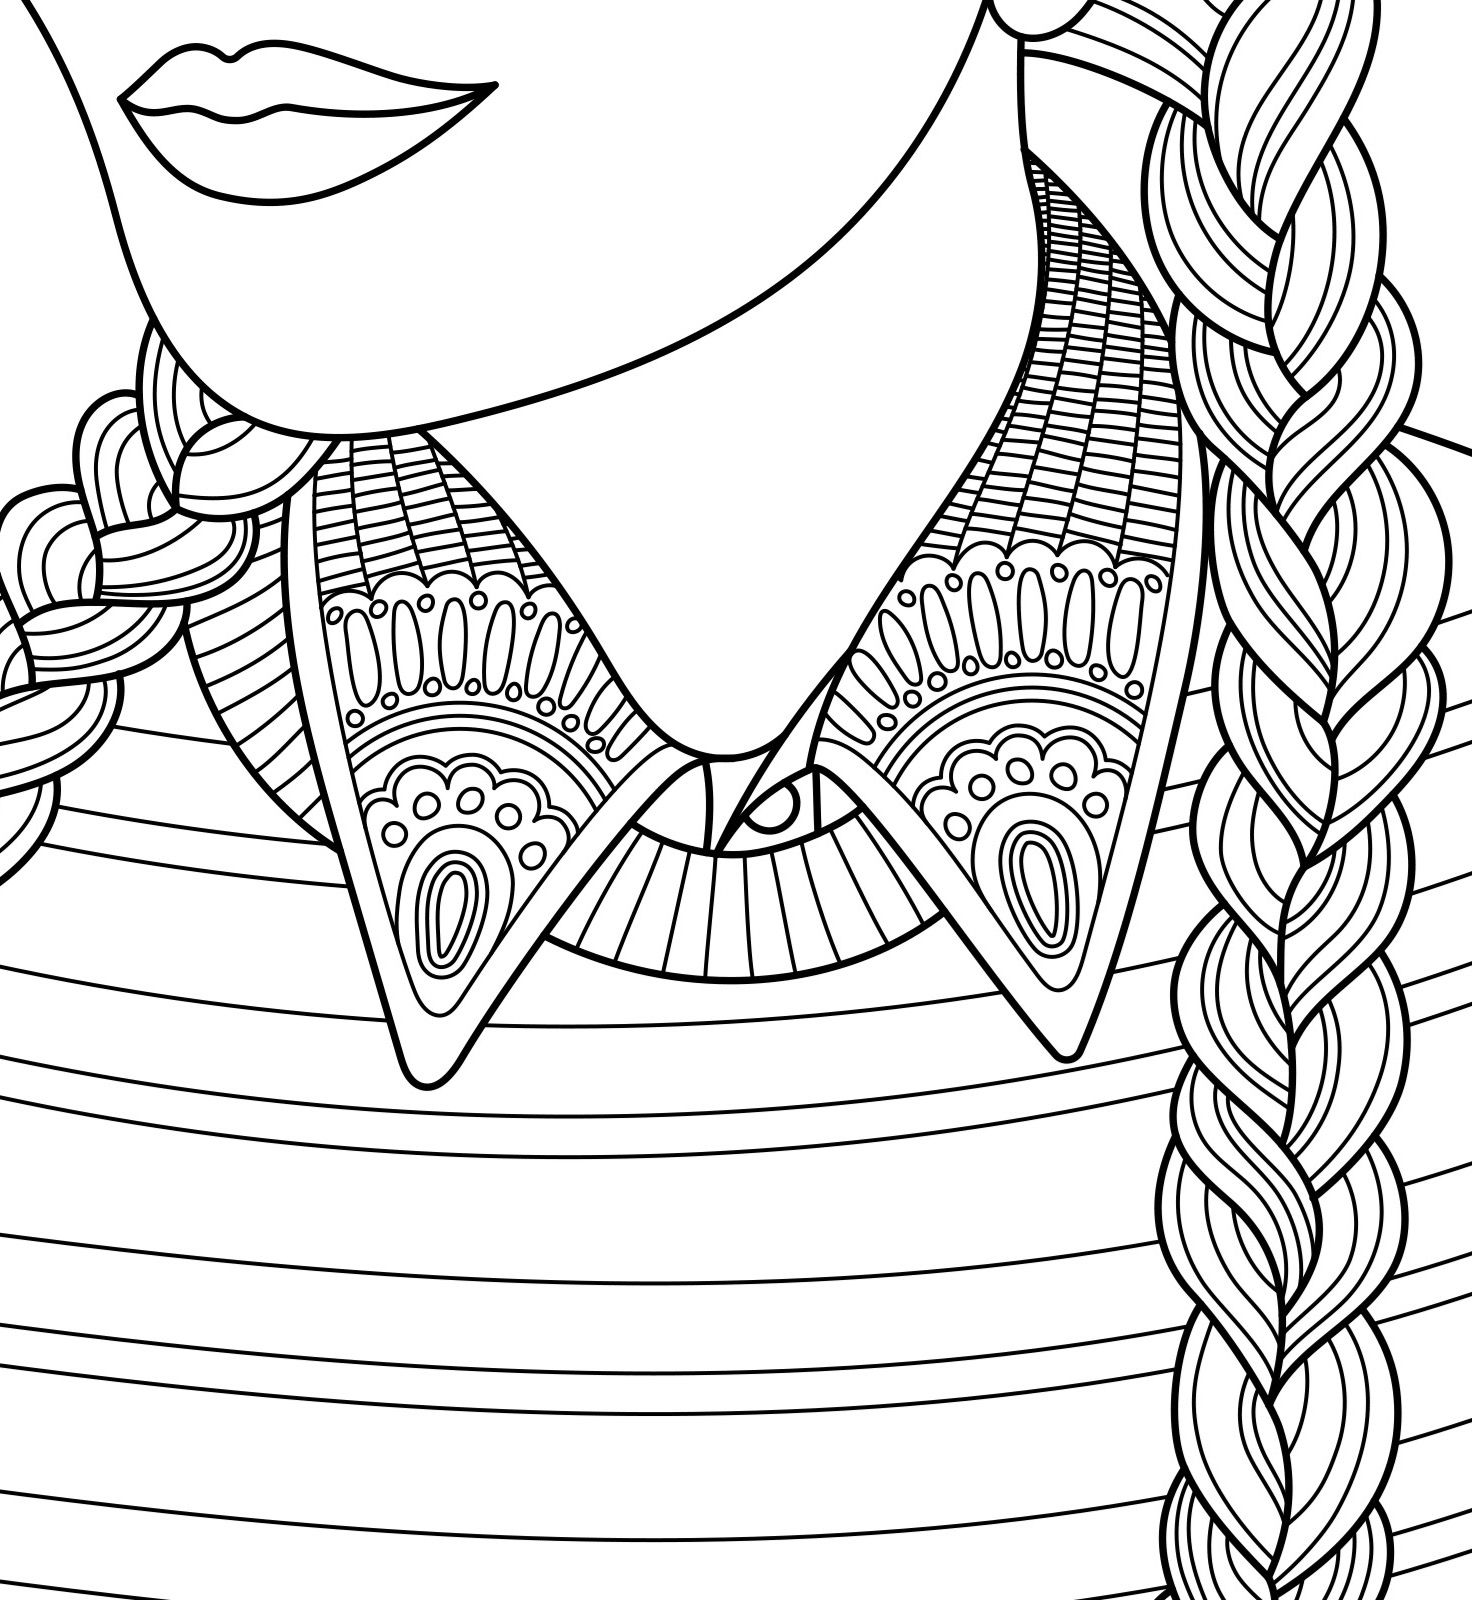 Girl With Plaits To Colour With Coloringbookforme Zebra